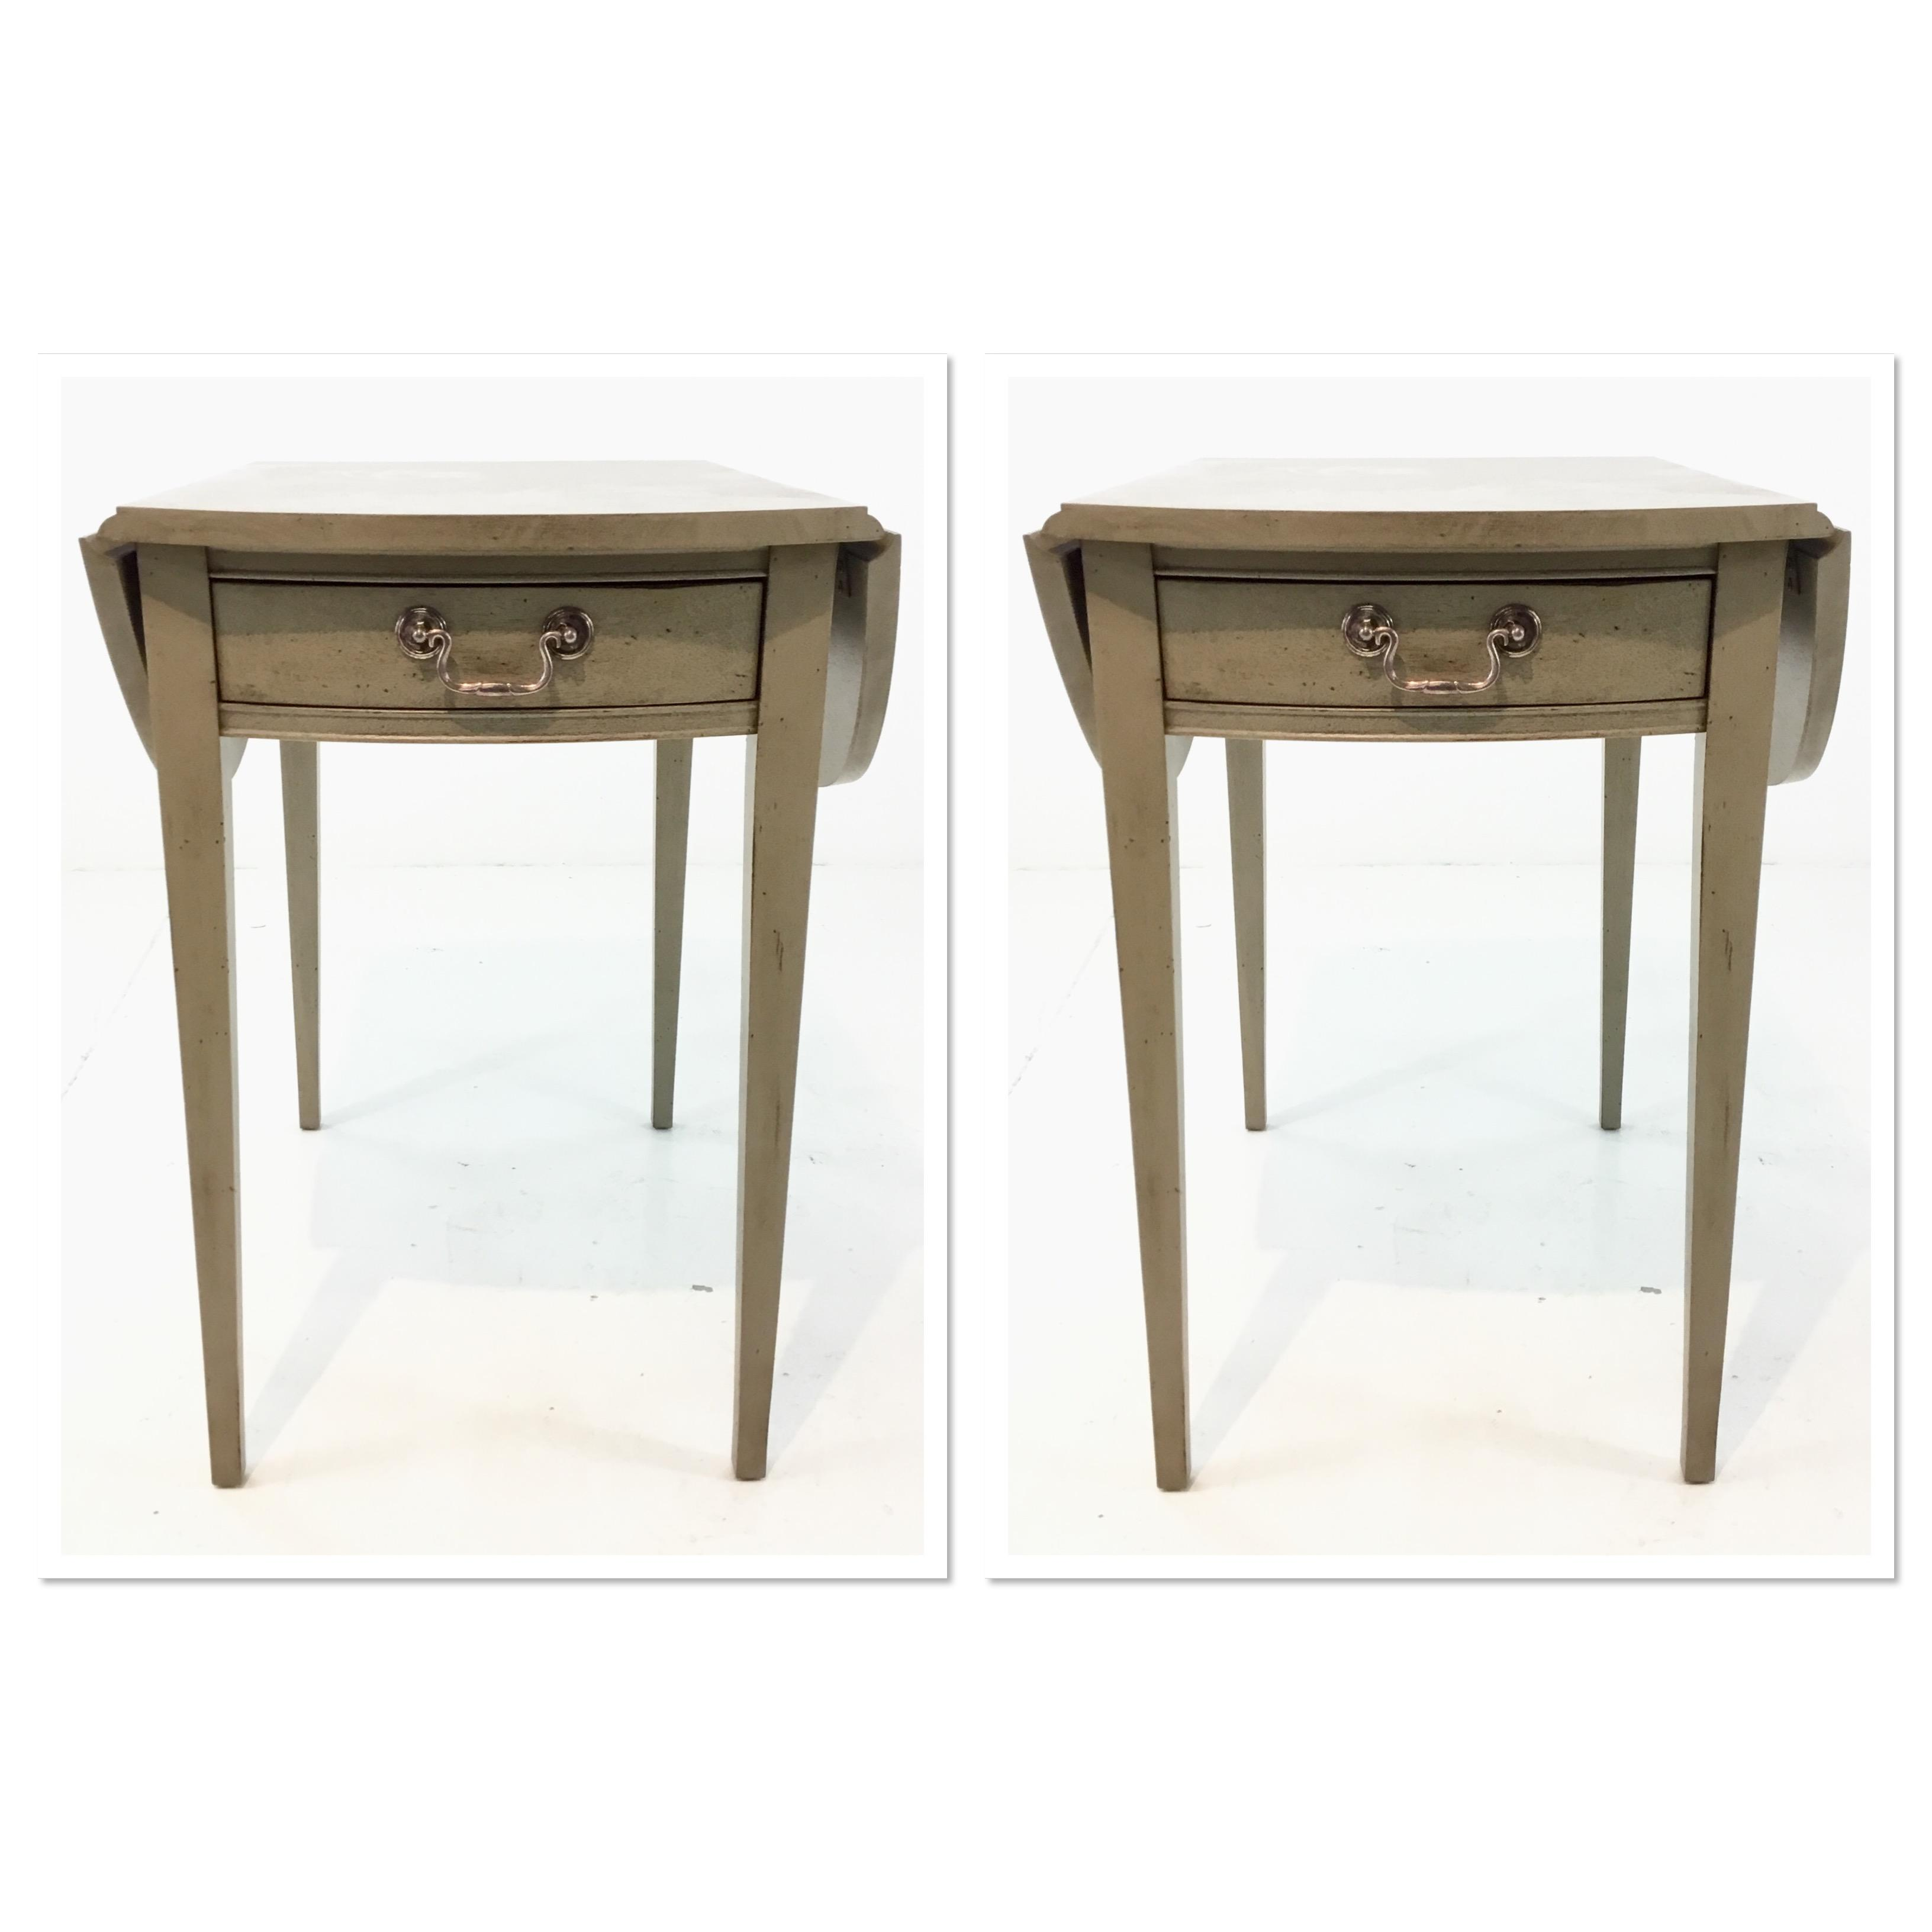 Tan Transitional Hickory Chair Pembroke Taupe Drop Leaf Side Tables Pair  For Sale   Image 8